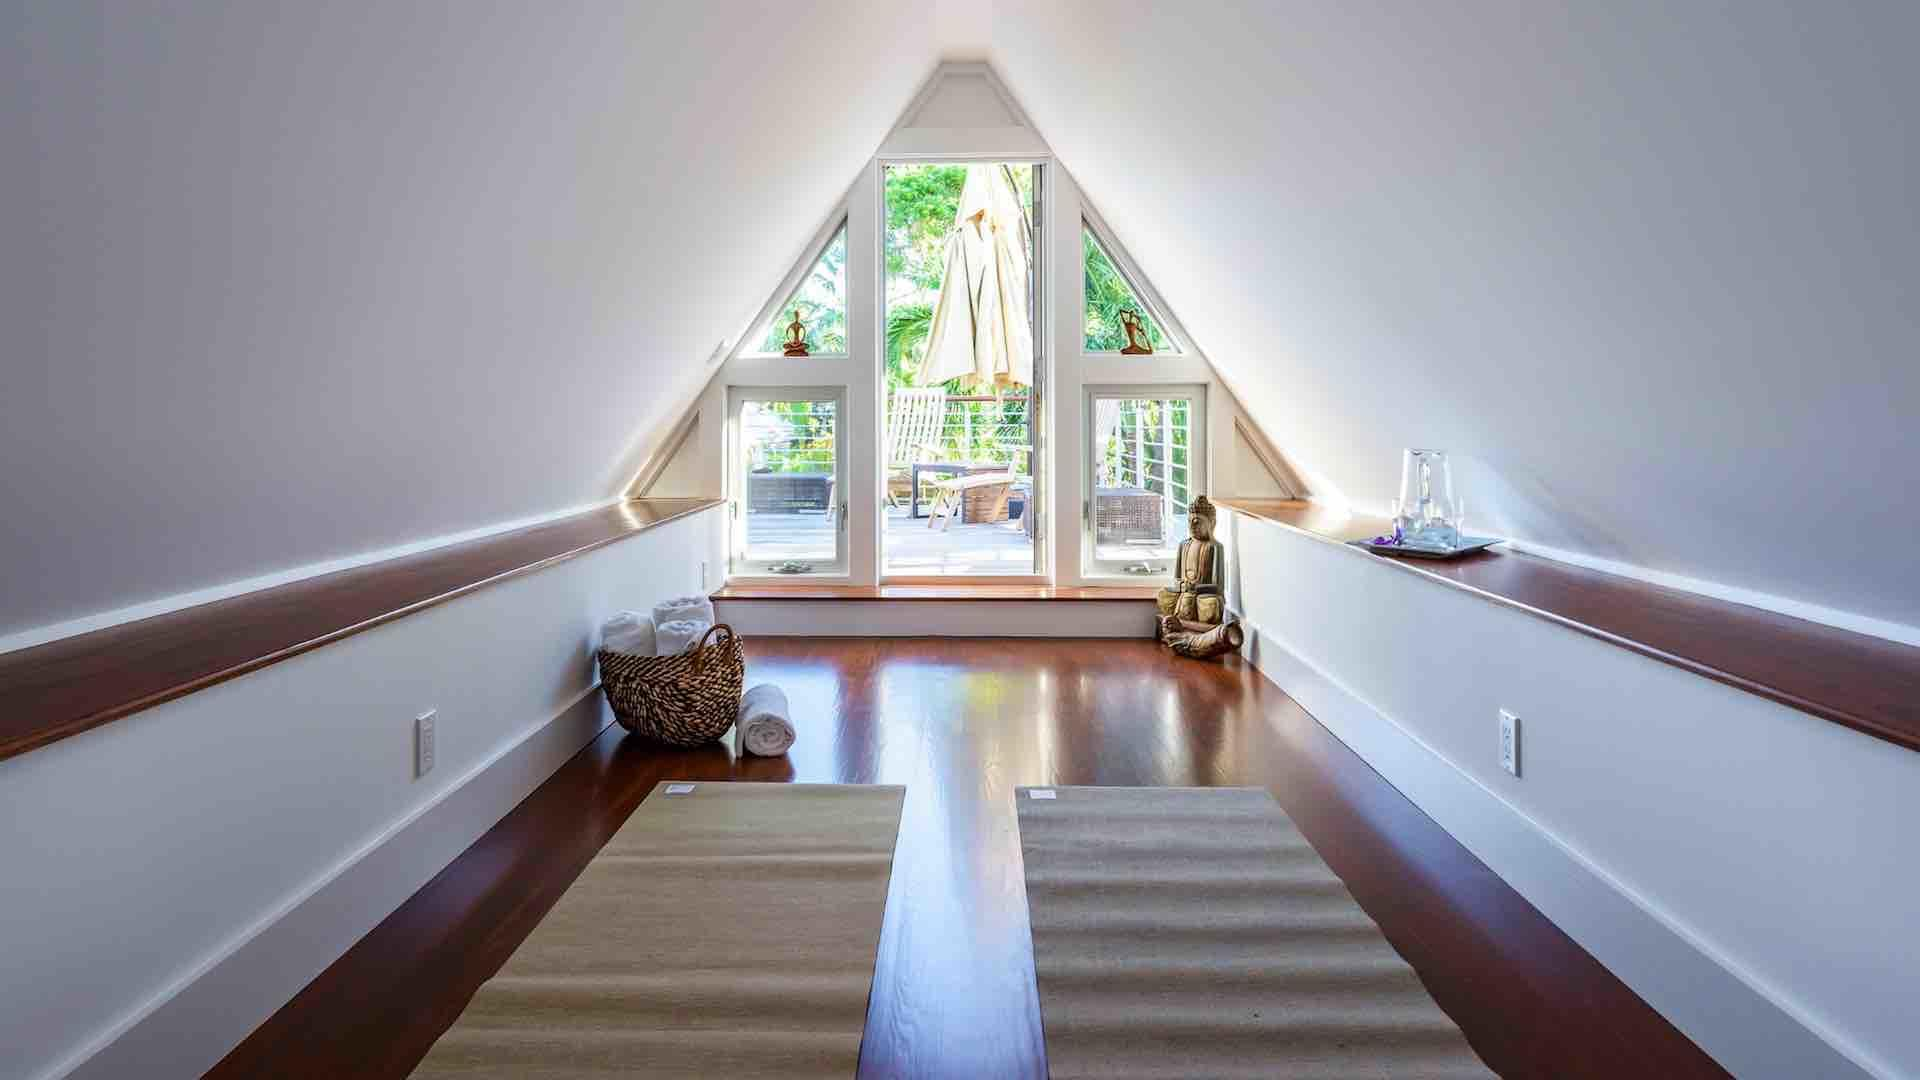 Inside the second Polynesian-style curved roof room is a private yoga studio...